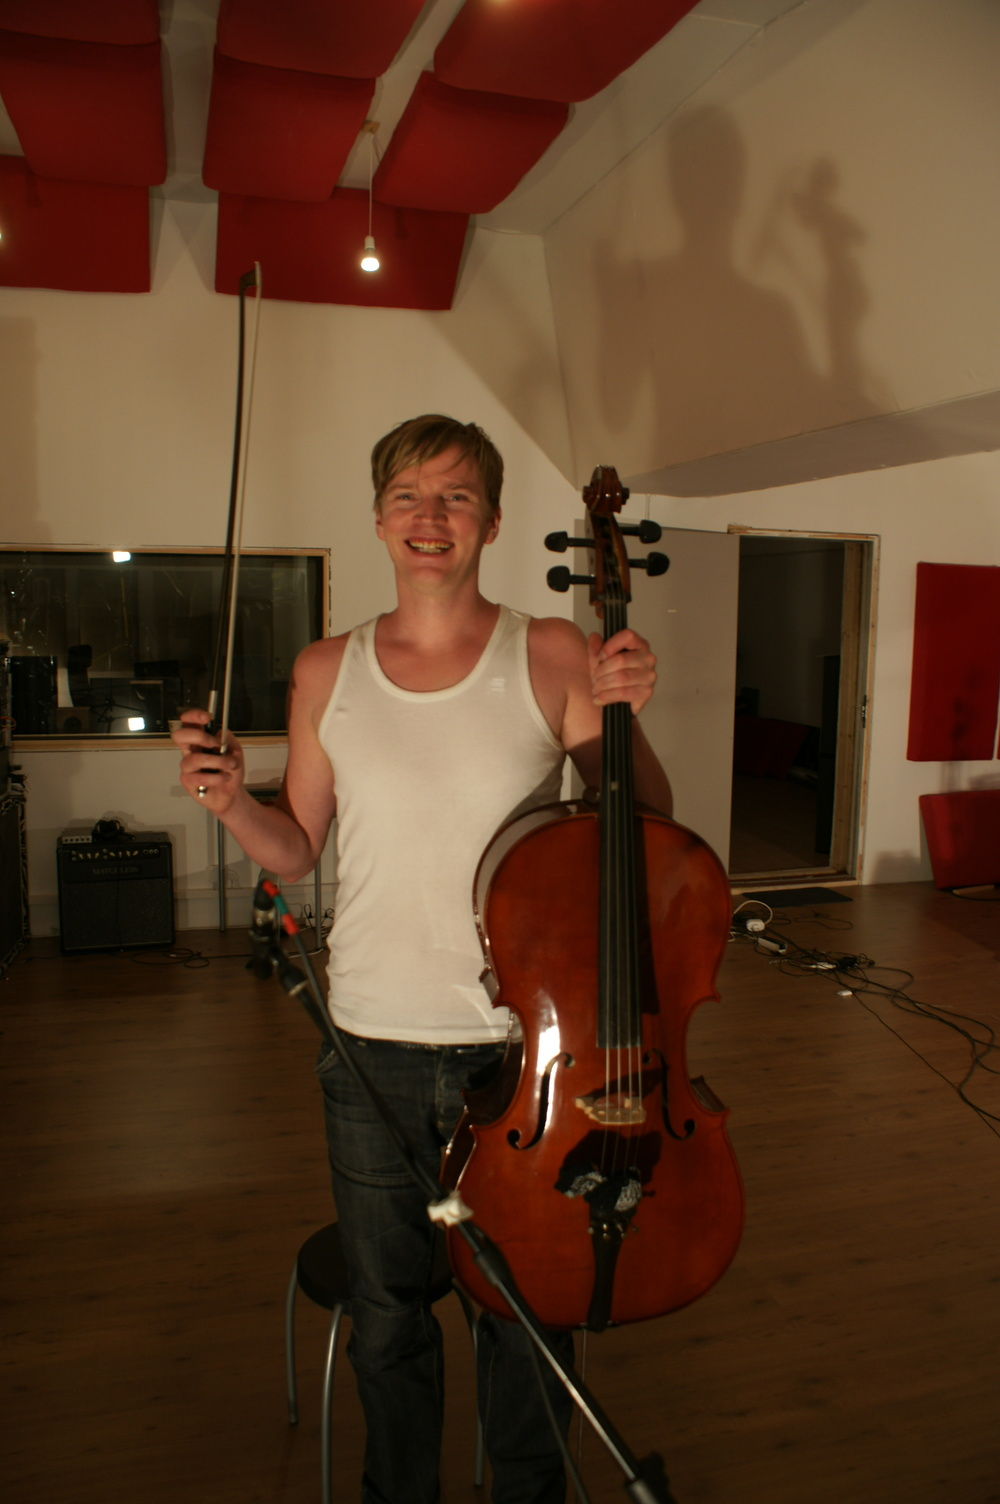 Show me your best smiling cellist picture in the comment field.